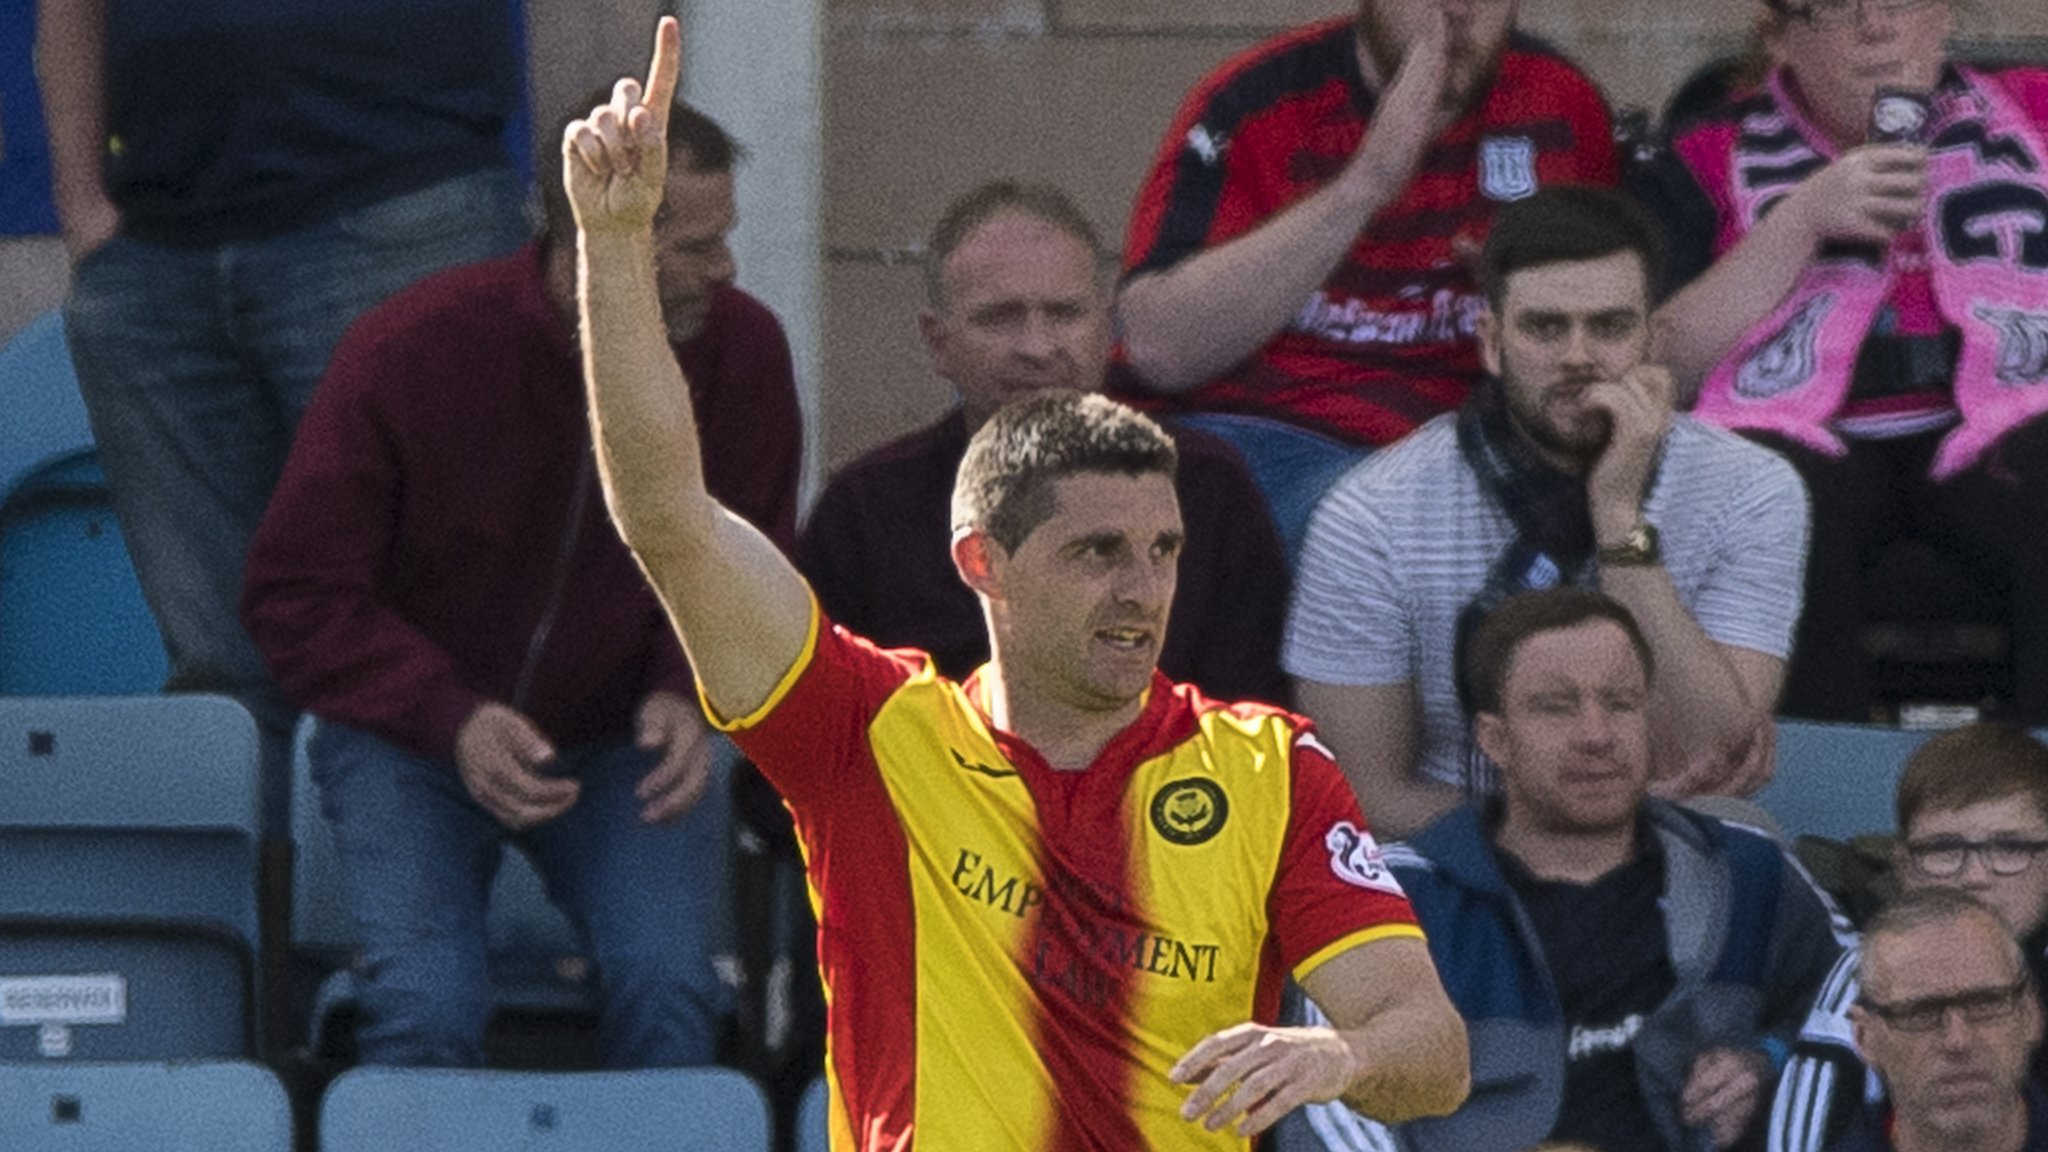 Dundee 0-1 Partick Thistle